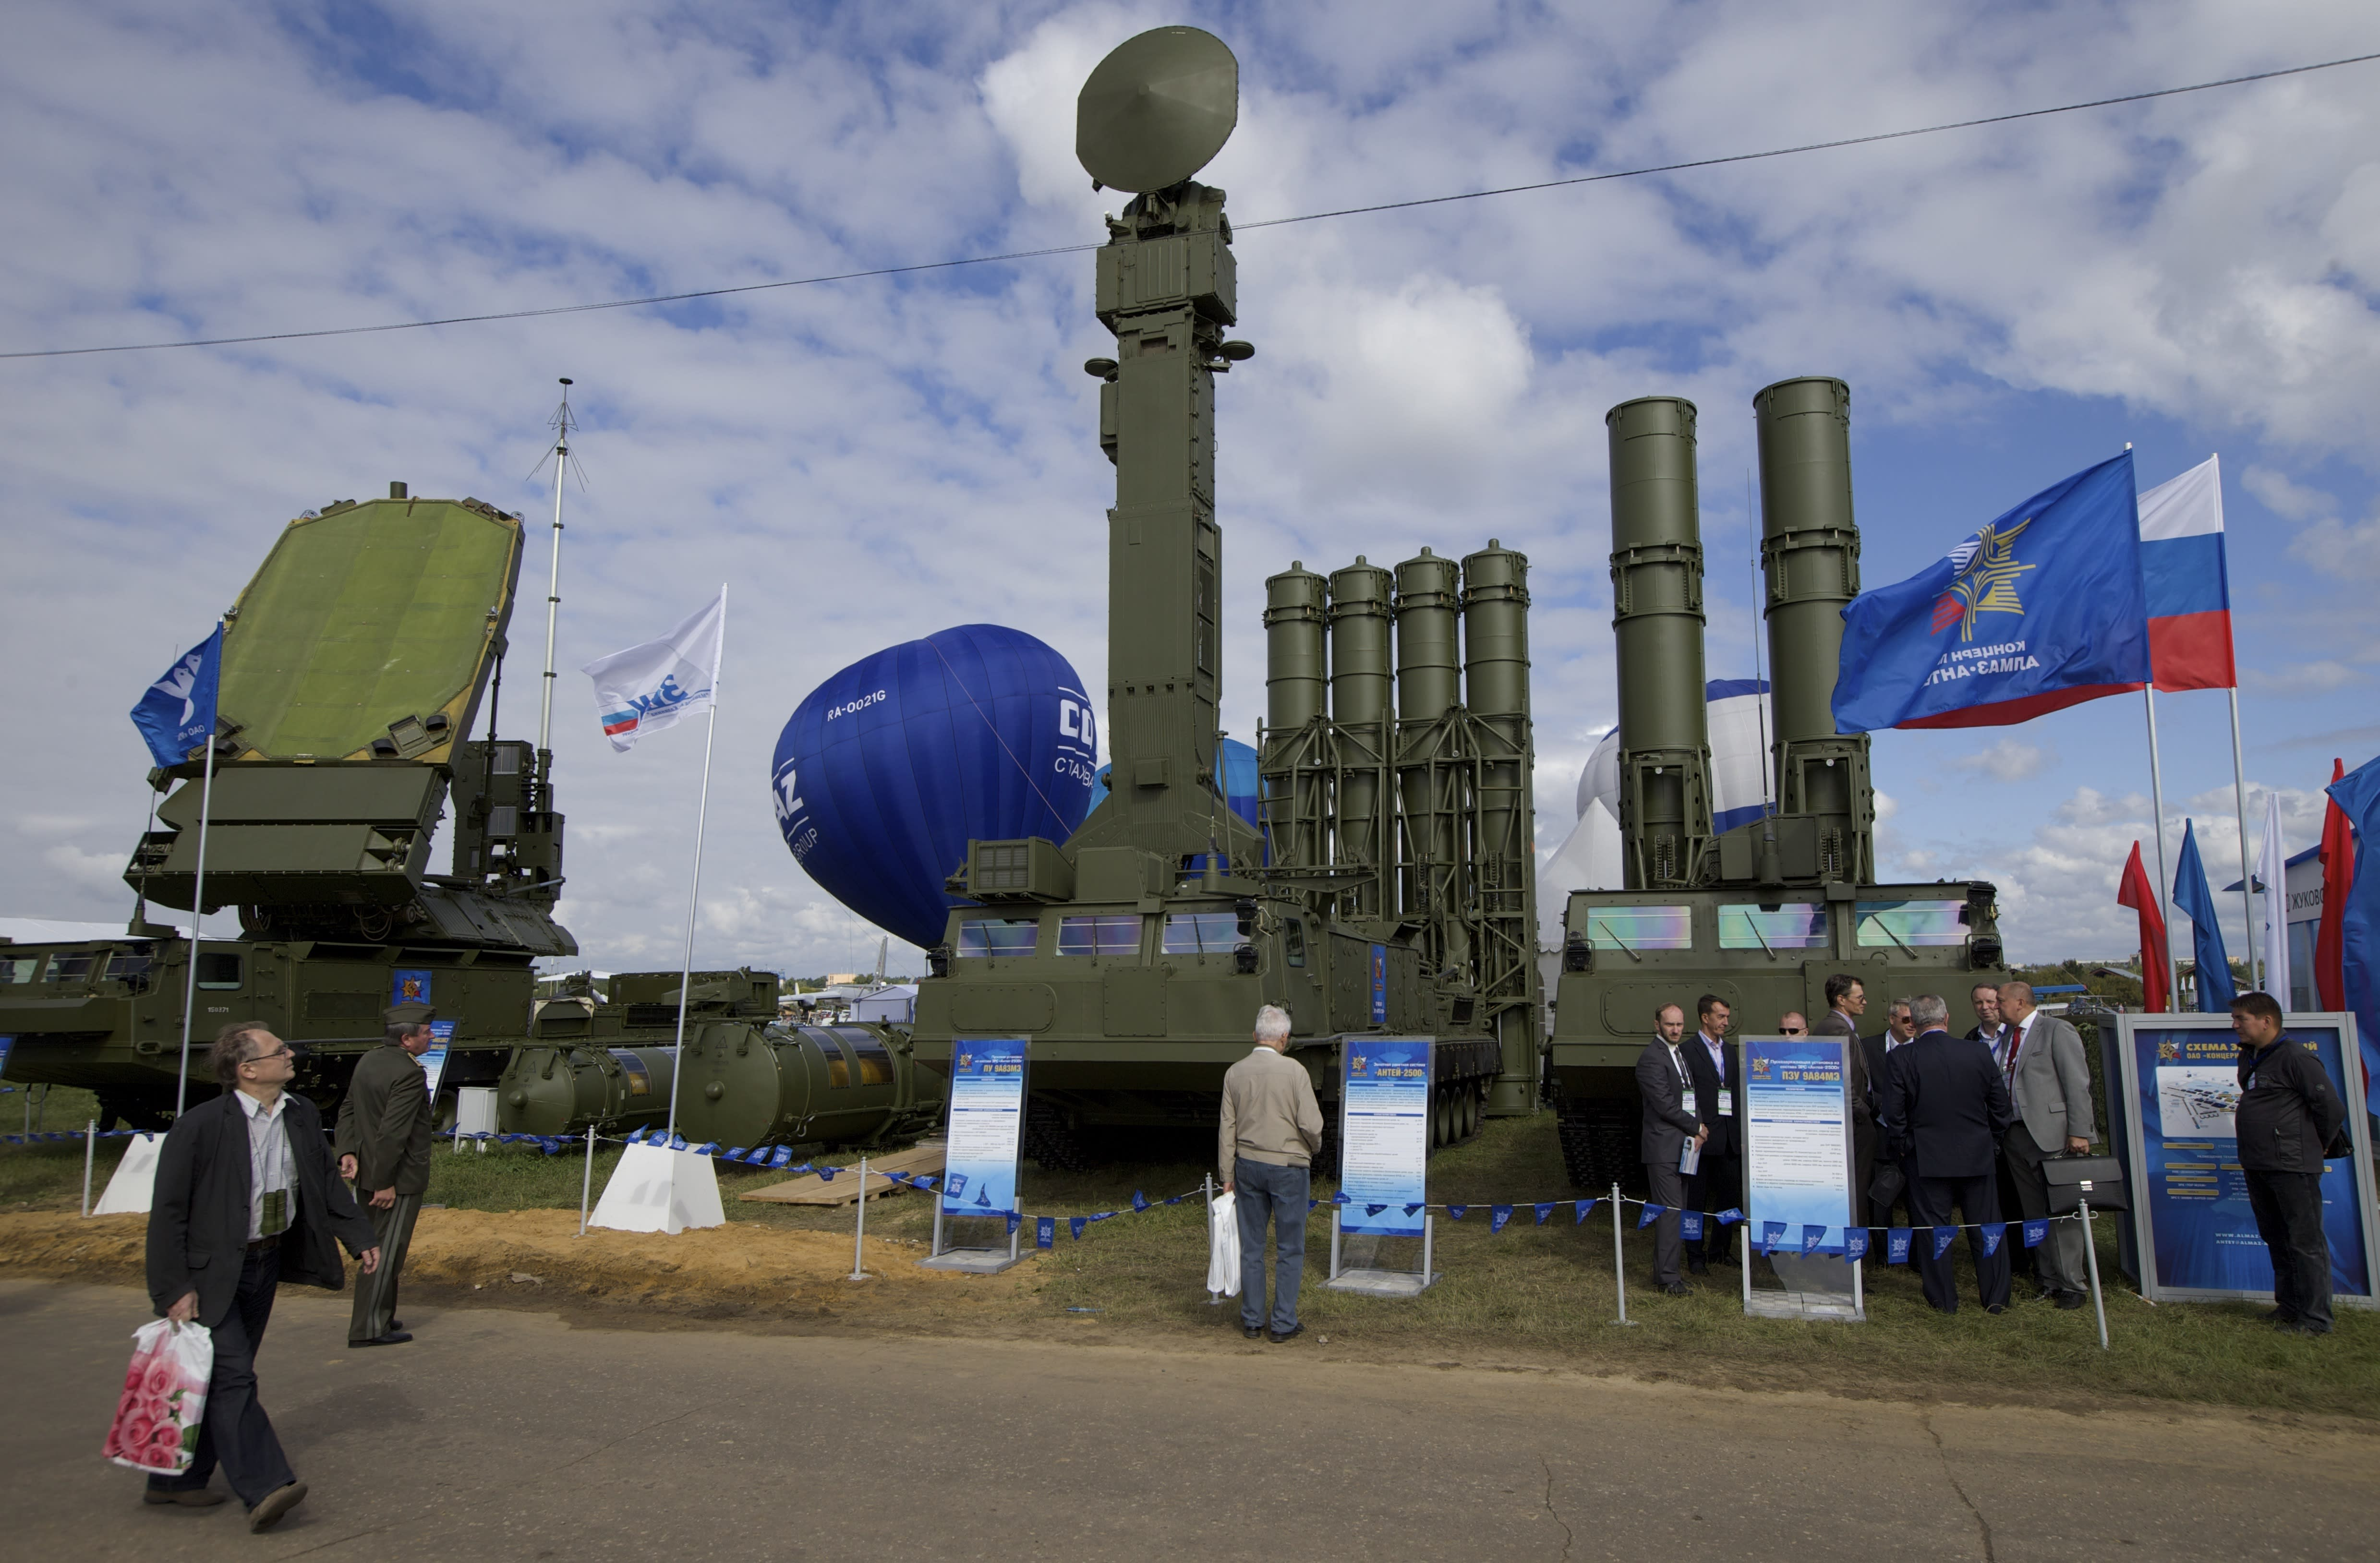 FILE - In this file photo taken on Tuesday, Aug. 27, 2013, Russian air defense system missile system Antey 2500, or S-300 VM, is on display at the opening of the MAKS Air Show in Zhukovsky outside Moscow, Russia. Moscow will supply the Syrian government with modern S-300 missile defense systems following last week's downing of a Russian plane, the Russian Defense Minister announced on Monday Sept. 24, 2018. (AP Photo/Ivan Sekretarev, File)